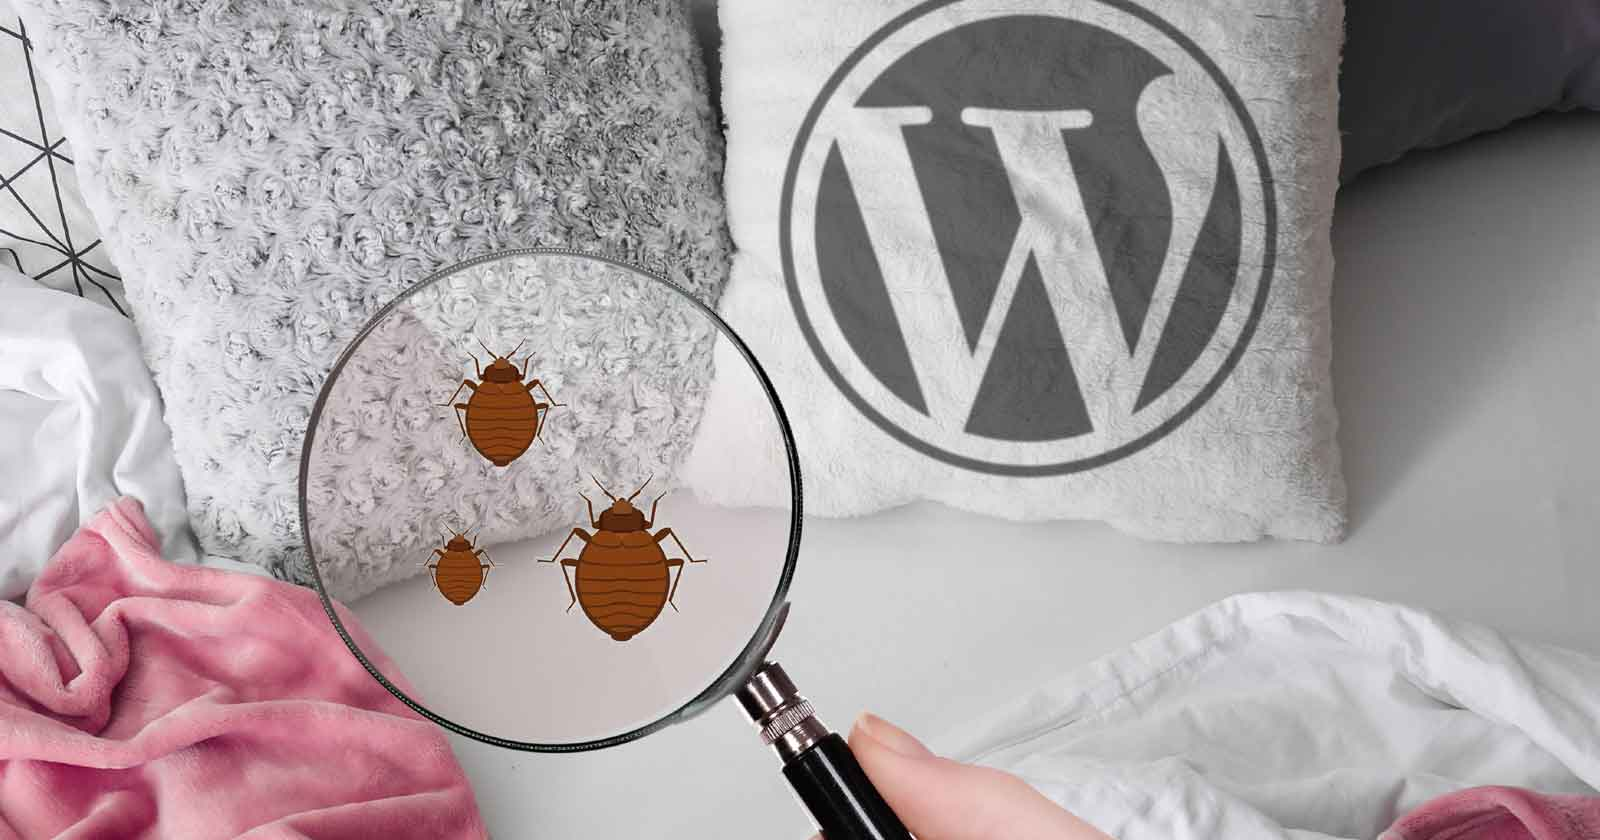 WordPress 5.6.1 Introduces Bug Into Post and Page Windows - Search Engine Journal